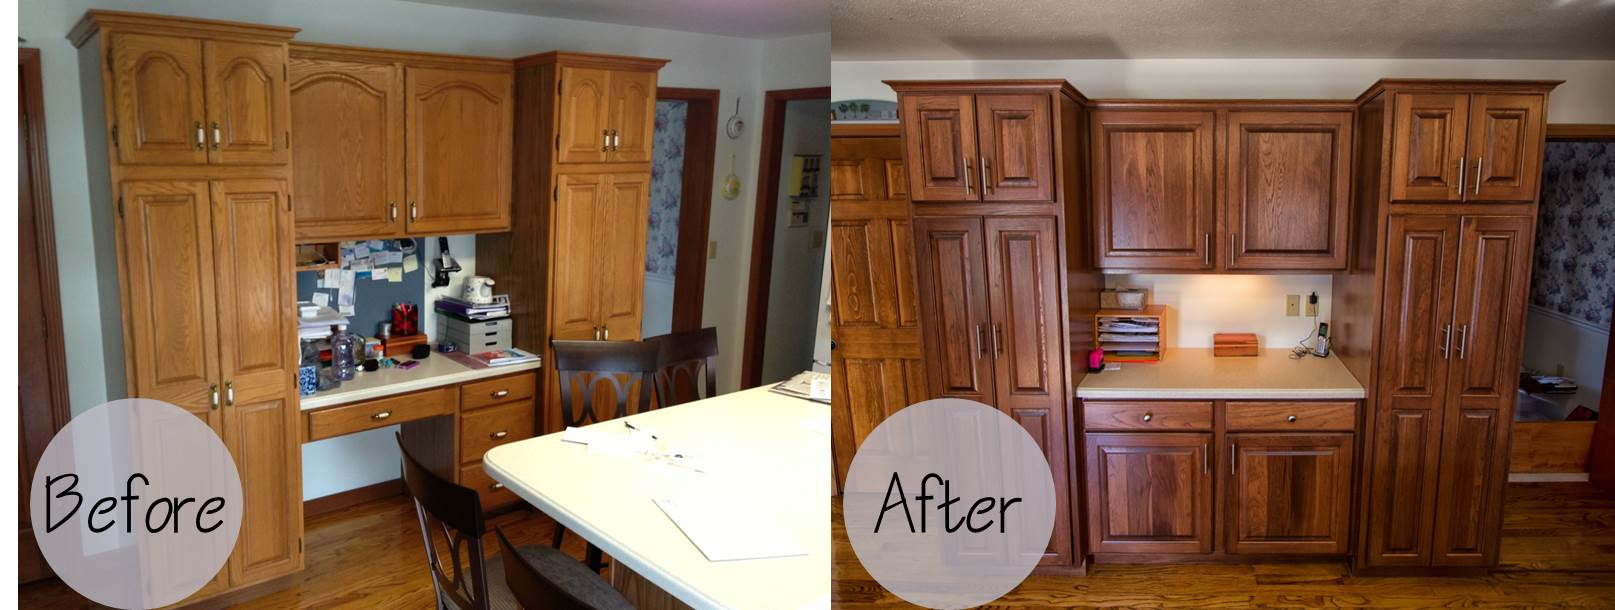 Cabinet Refacing Bucks County PA  Kitchen Cabinet